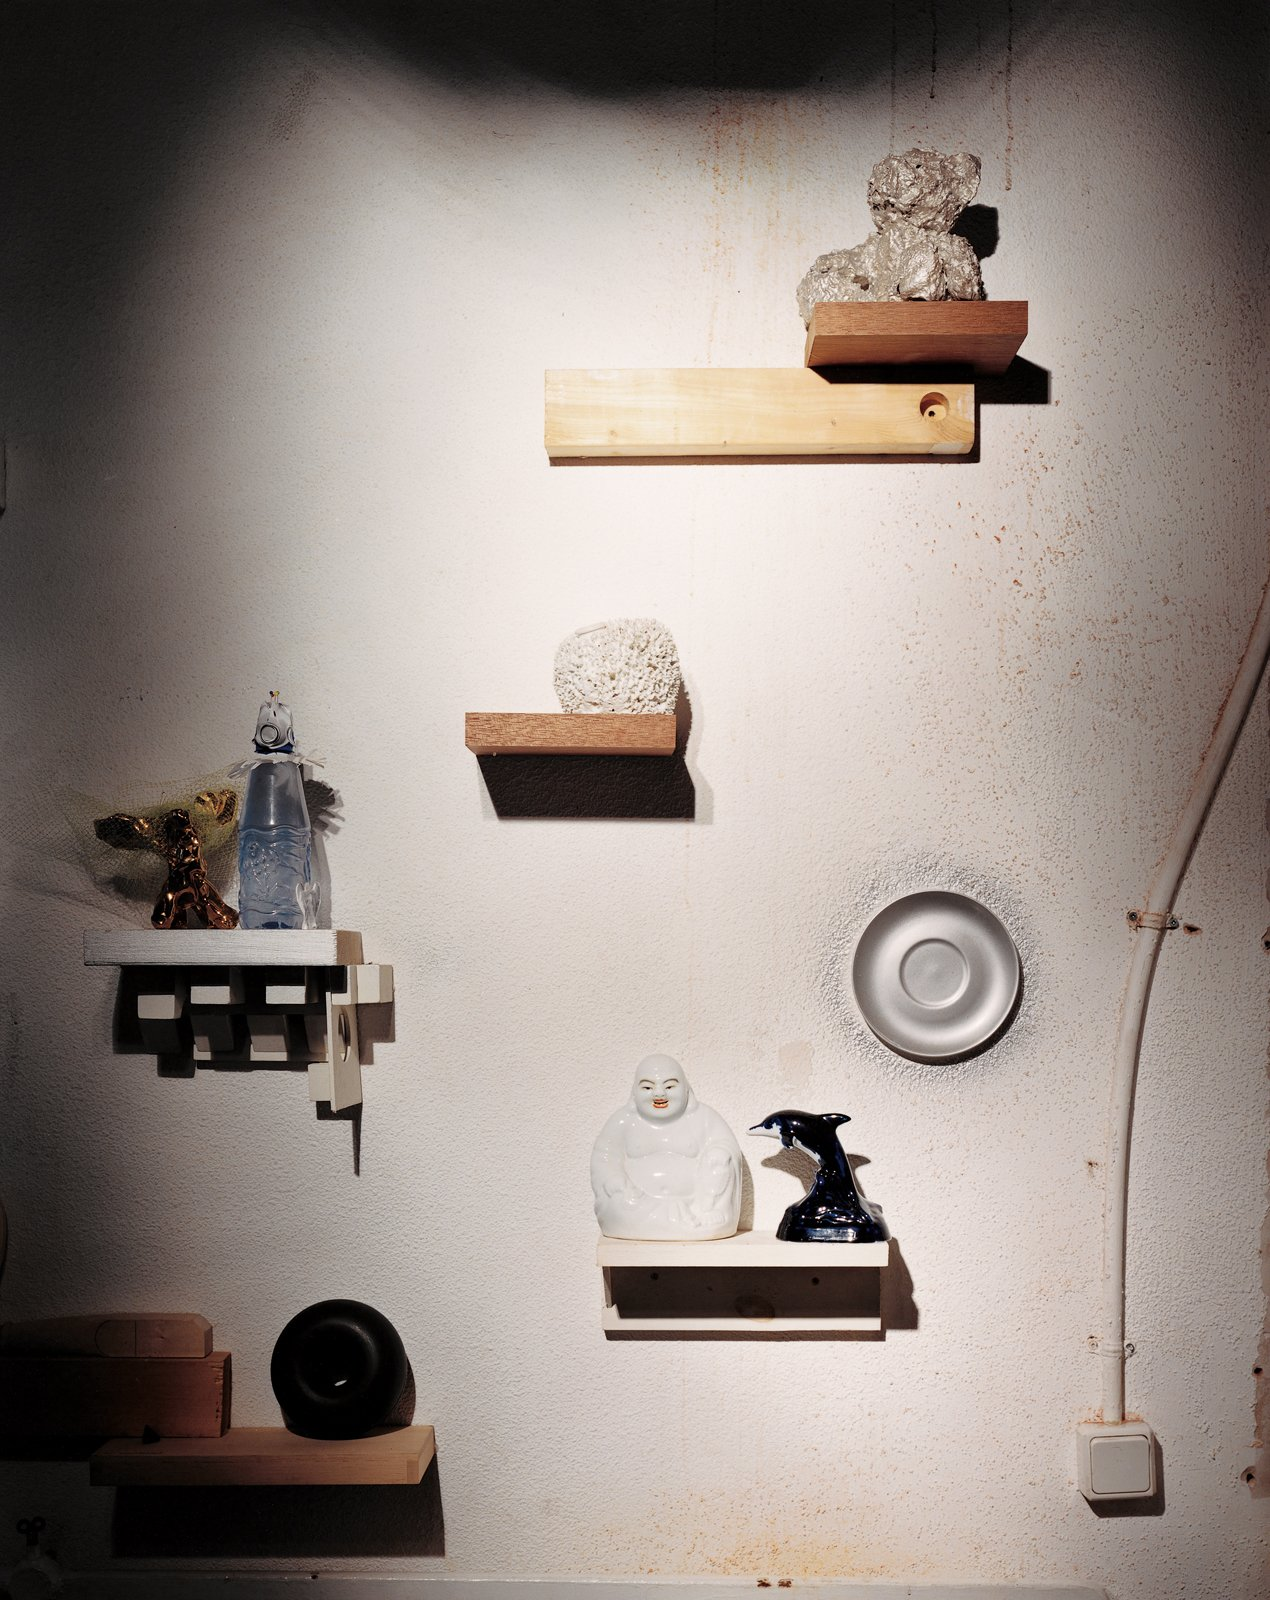 An installation of mismatched handmade shelves makes a display area for another enigmatic assortment of objects, including a Wanders Sponge vase (1997), made by soaking a real sponge in clay, which burns away when the piece is fired. The same technique was used on the silver-plated teddy bear above it. The dolphin and Buddha figures—perhaps a reminder of Wanders's role in mainstreaming kitsch—illustrate the designer's interest in ordinary, popular decorative objects.  Photo 10 of 11 in Marcel Wanders